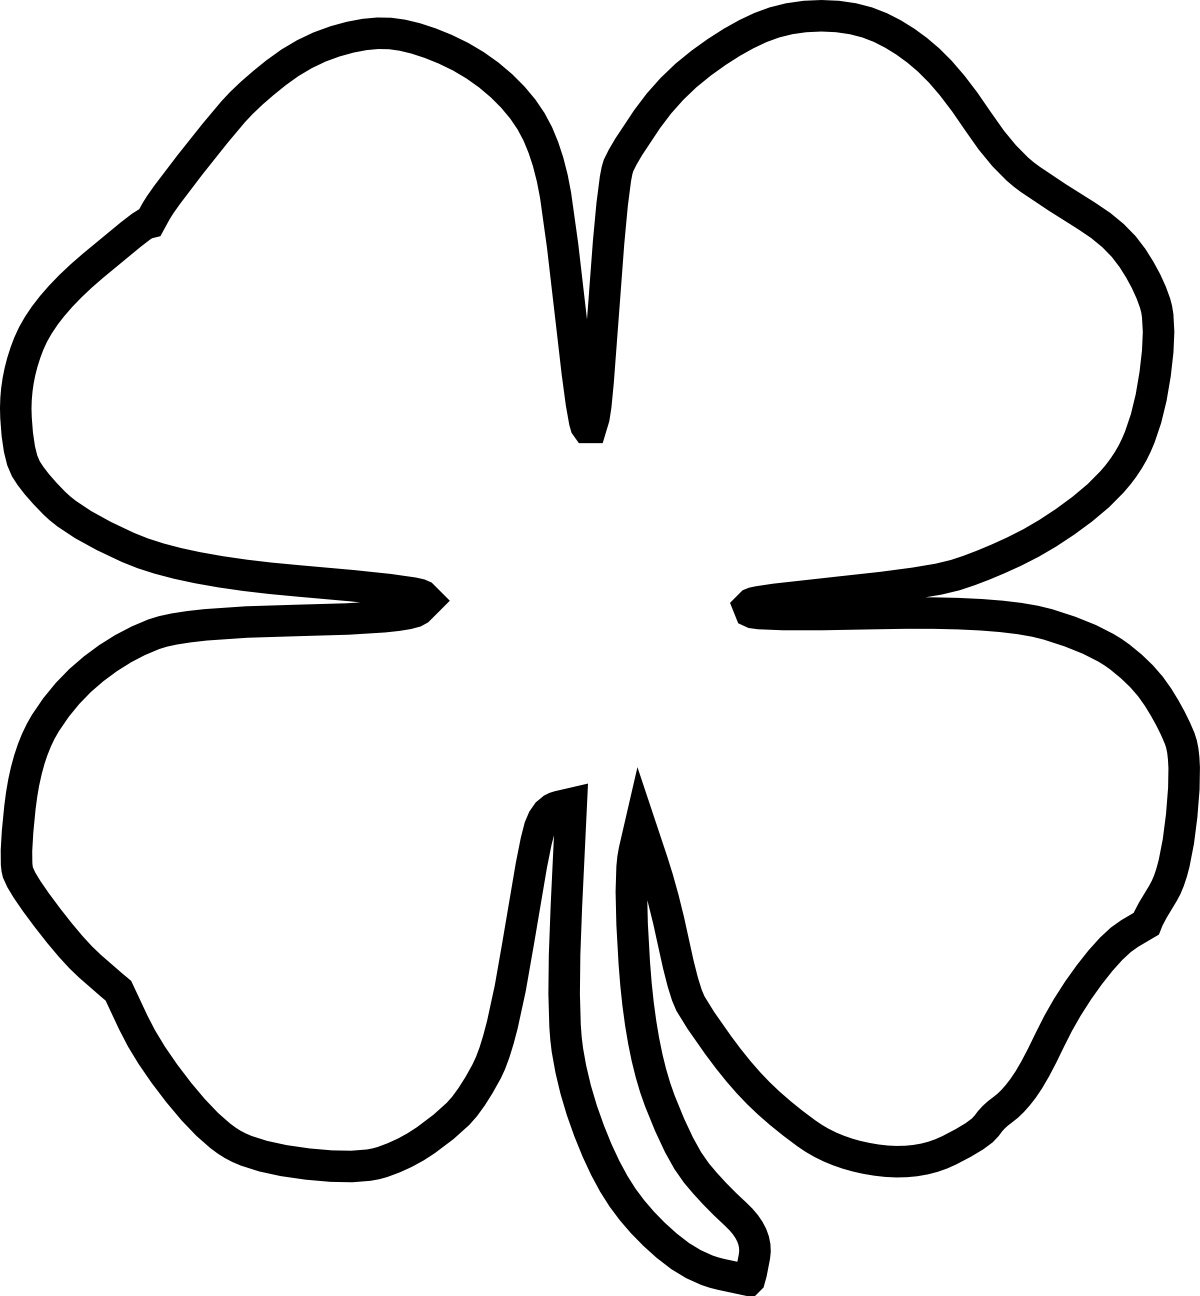 4 Leaf Clover Outline